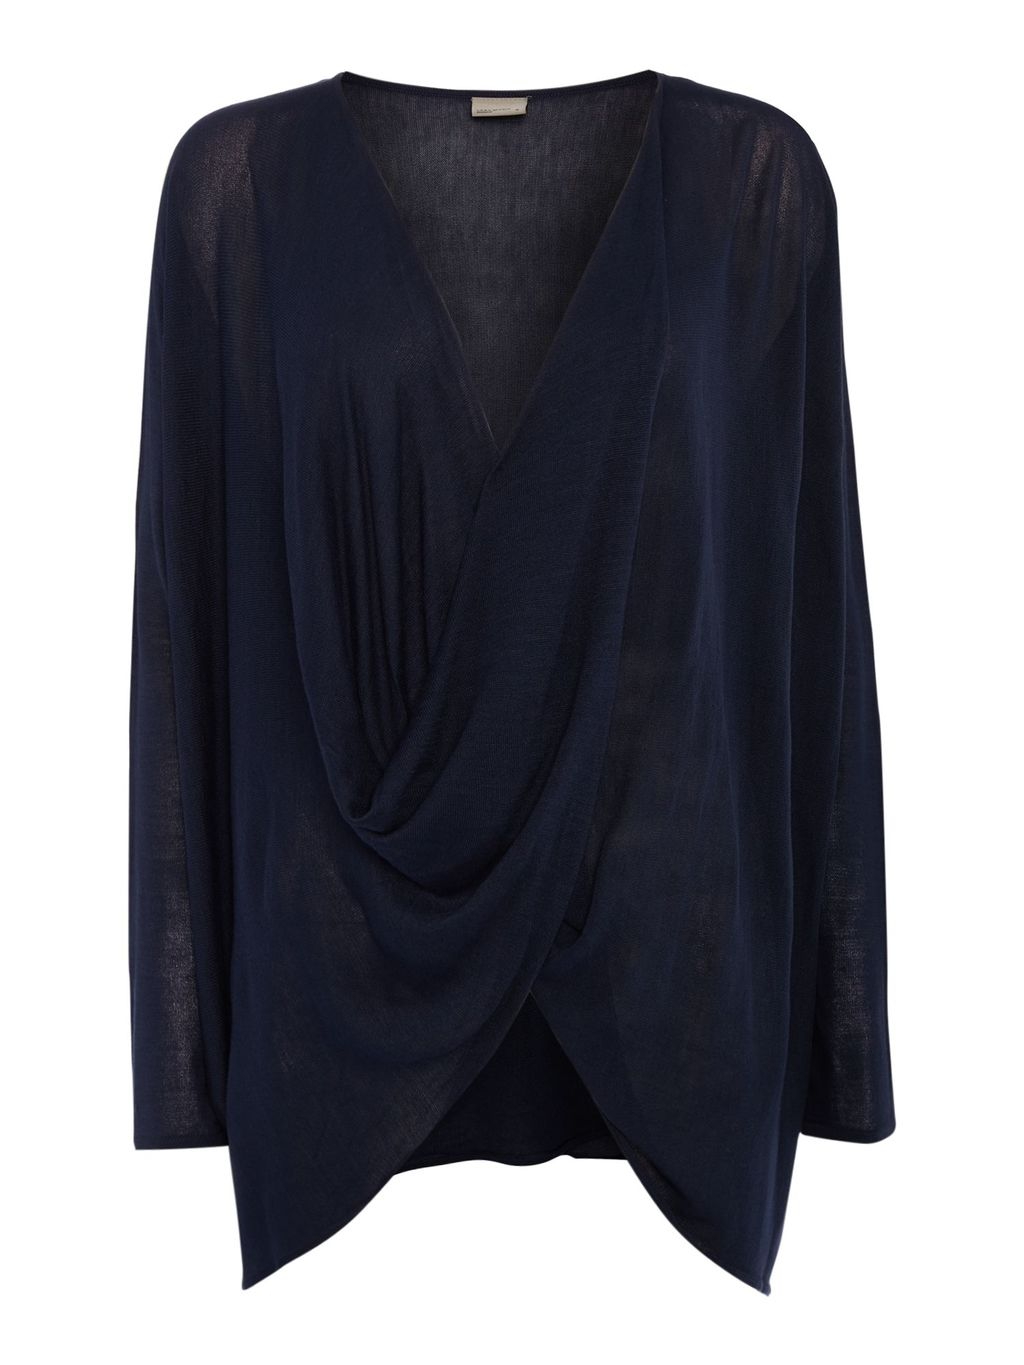 Long Sleeve Twist Blouse, Navy - neckline: low v-neck; pattern: plain; style: wrap/faux wrap; predominant colour: navy; occasions: casual; length: standard; fit: body skimming; sleeve length: long sleeve; sleeve style: standard; pattern type: fabric; texture group: jersey - stretchy/drapey; fibres: viscose/rayon - mix; season: s/s 2016; wardrobe: basic